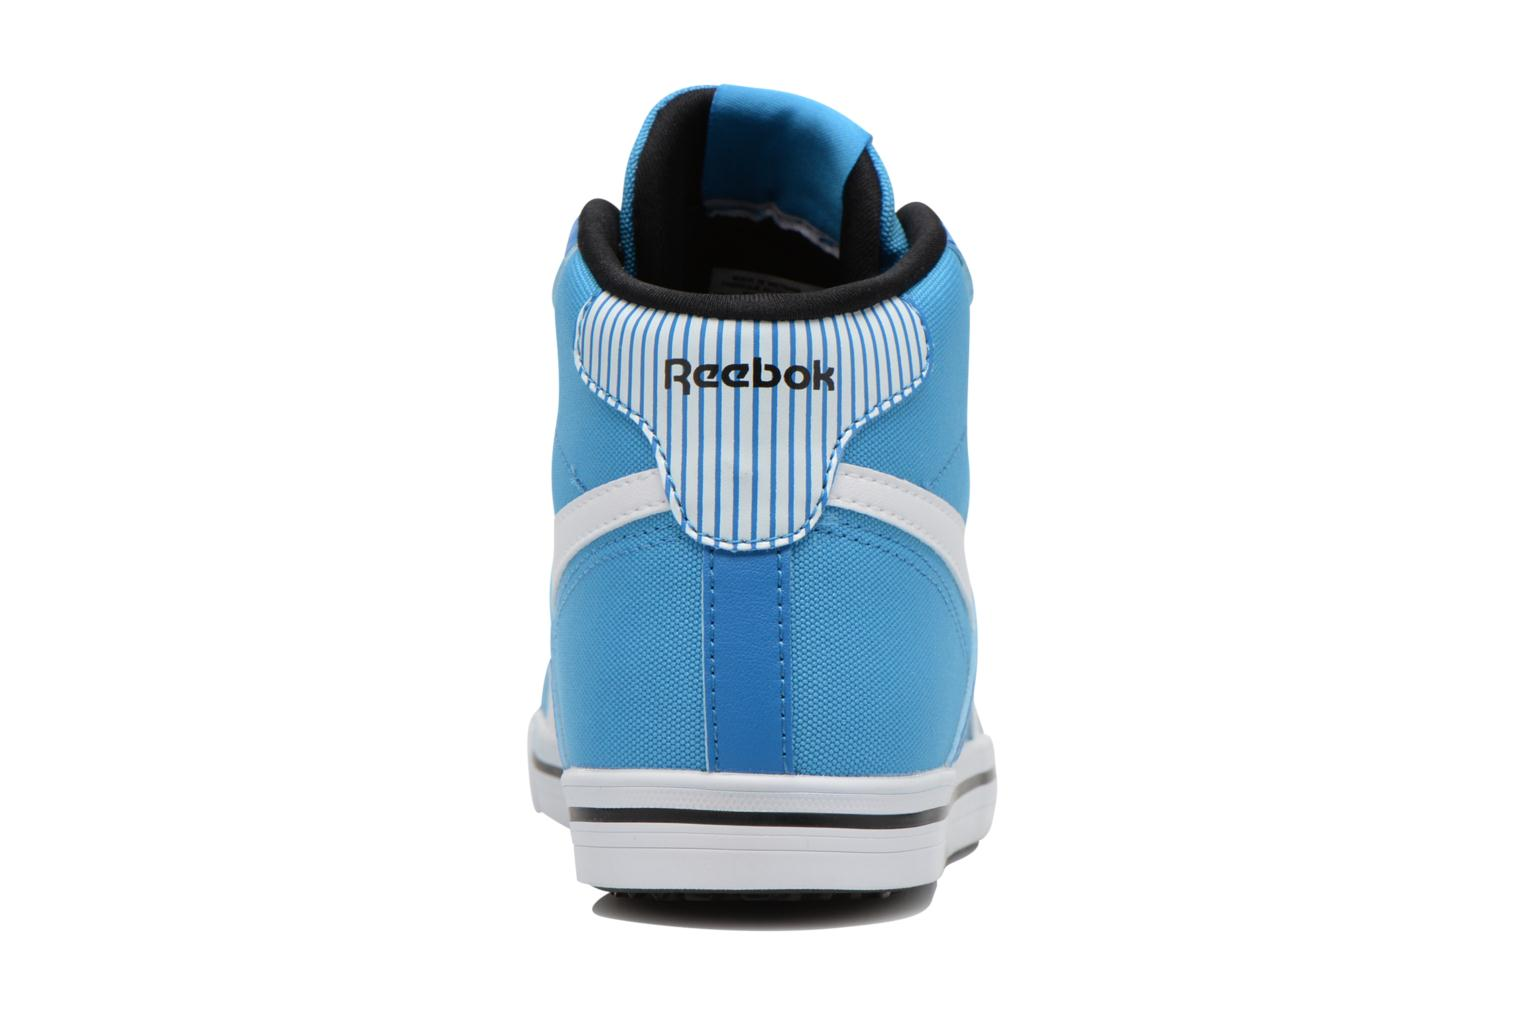 Reebok Royal Comp Mid Cvs Electric Blue/Black/White